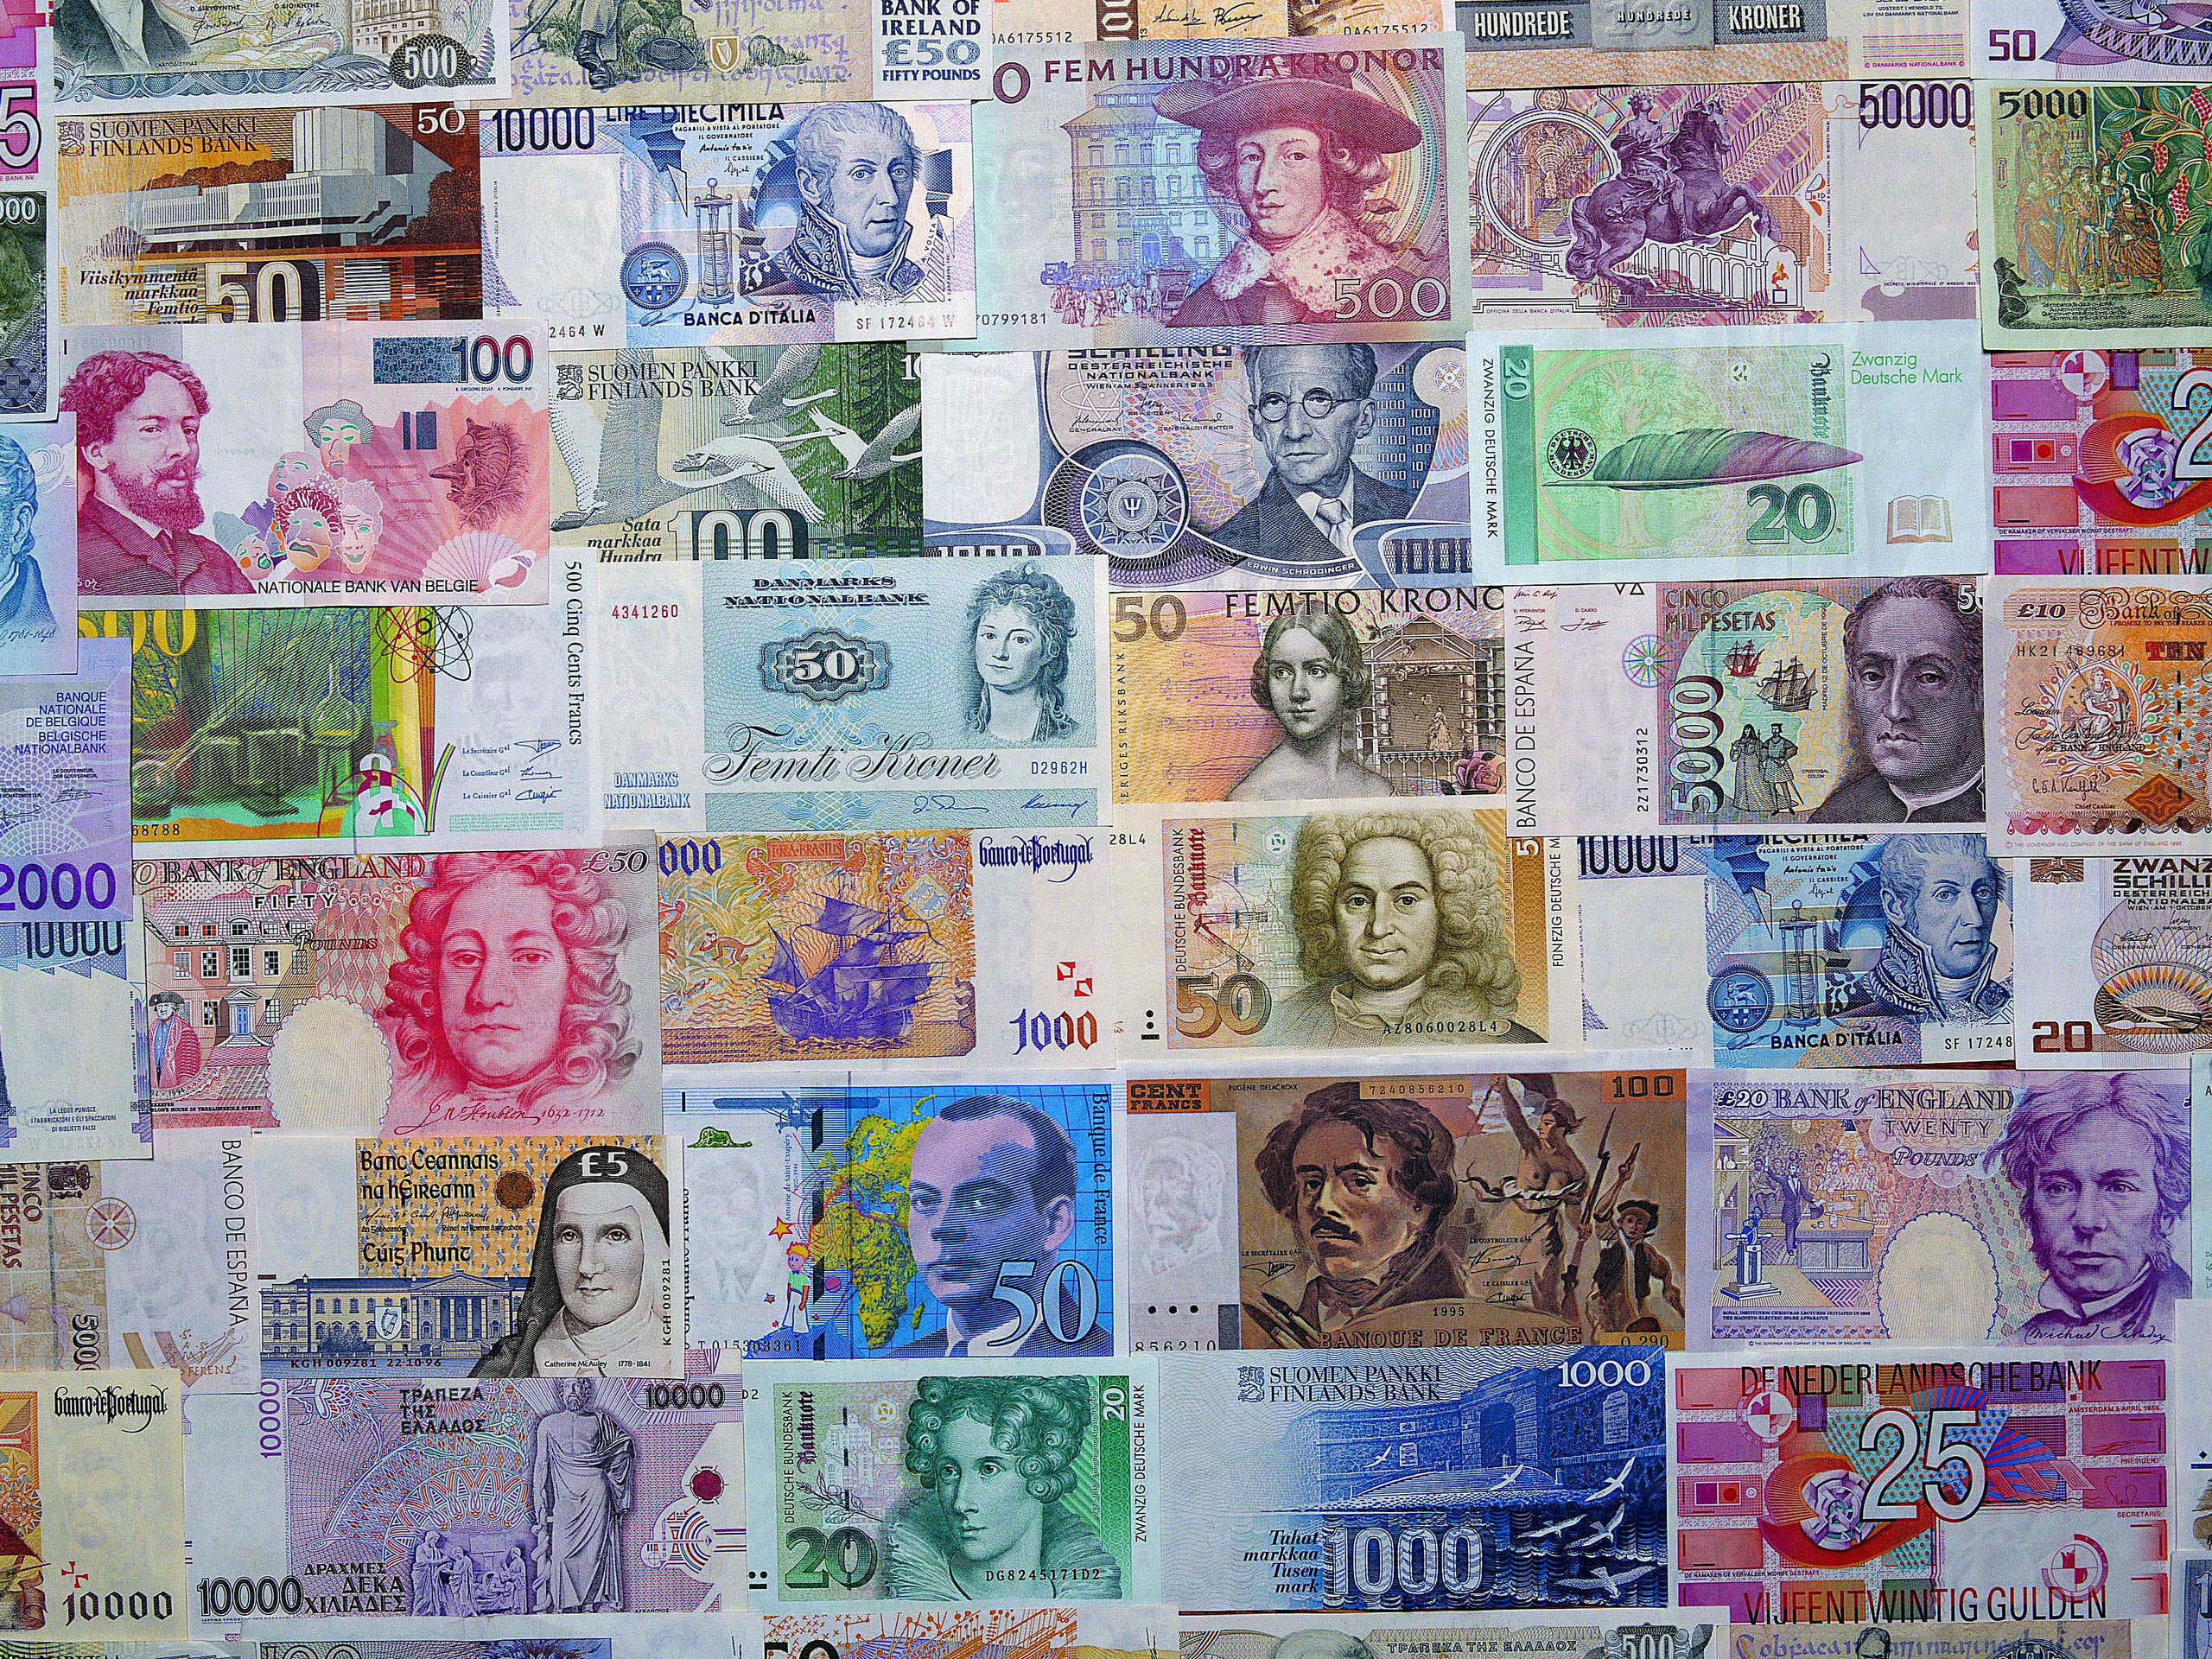 Collage of Banknotes